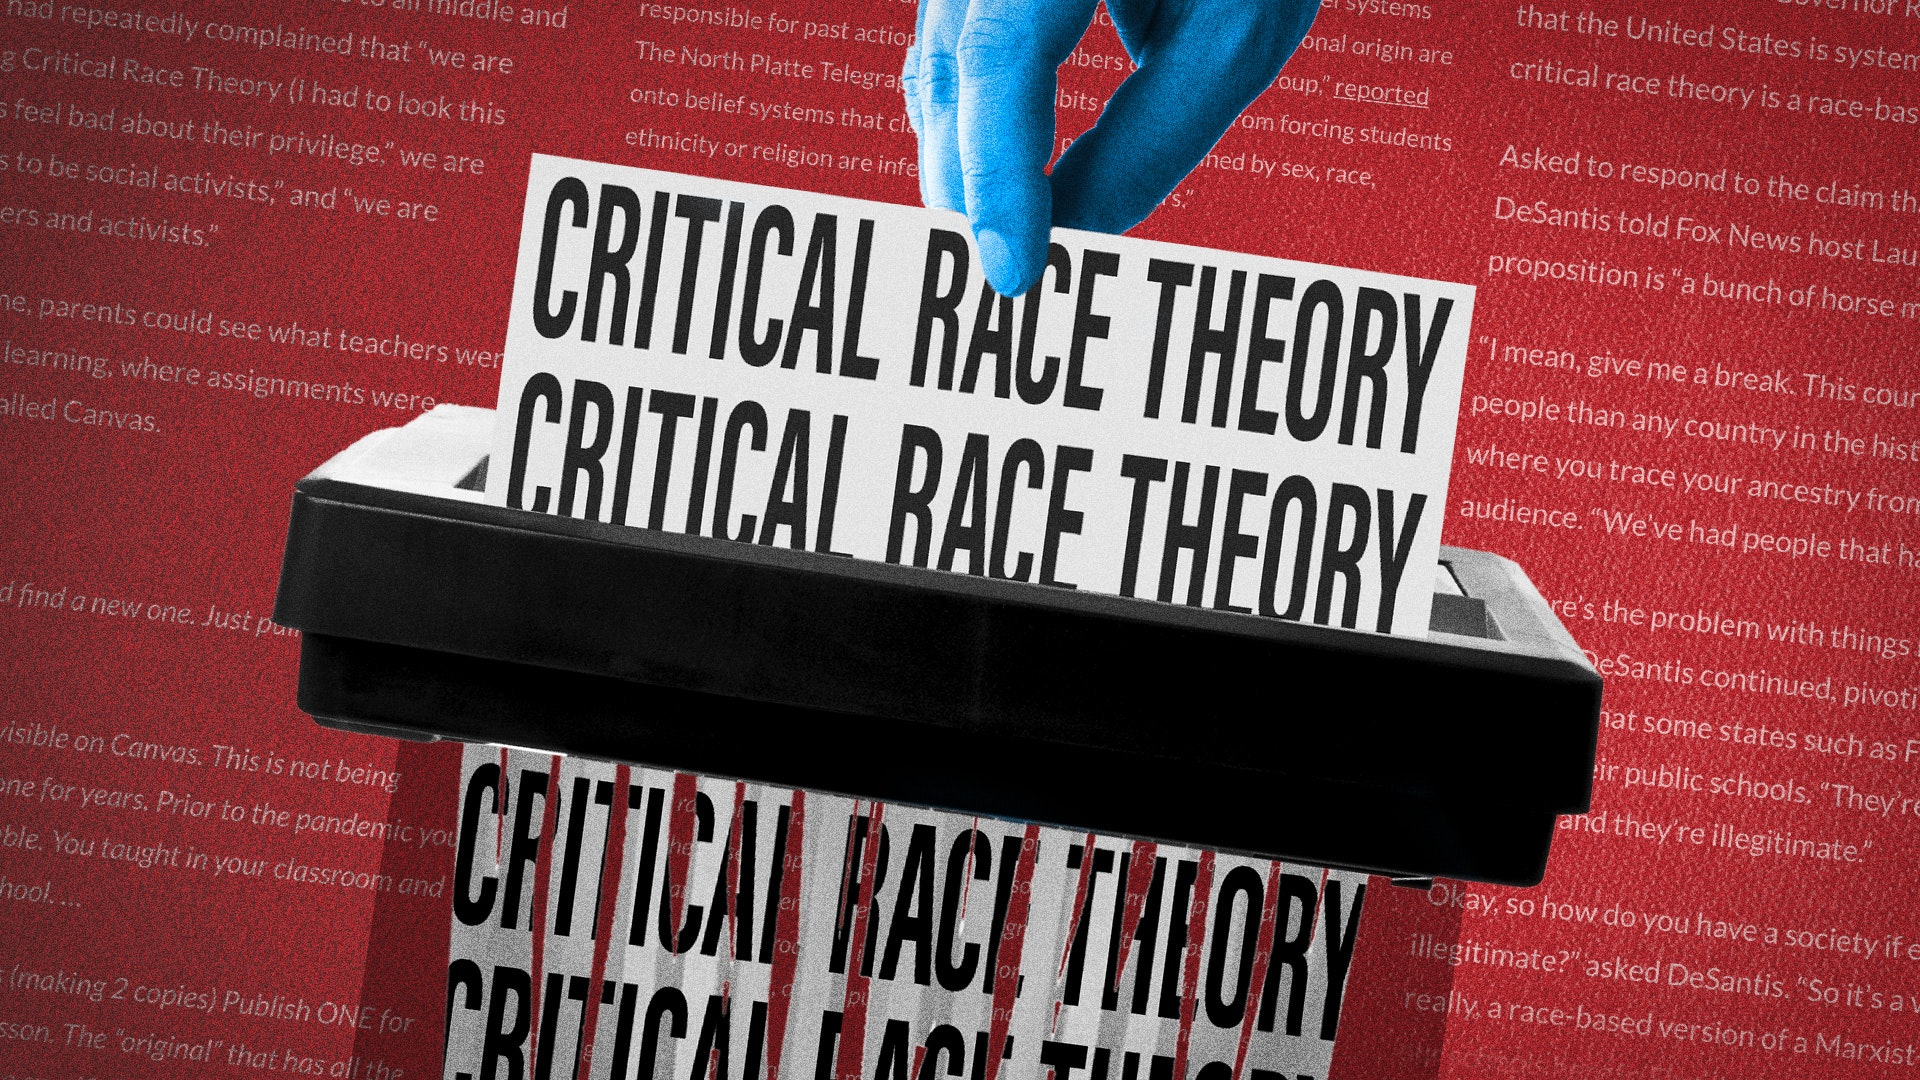 Ep. 713 - Eradicating The Cancer Of Critical Race Theory